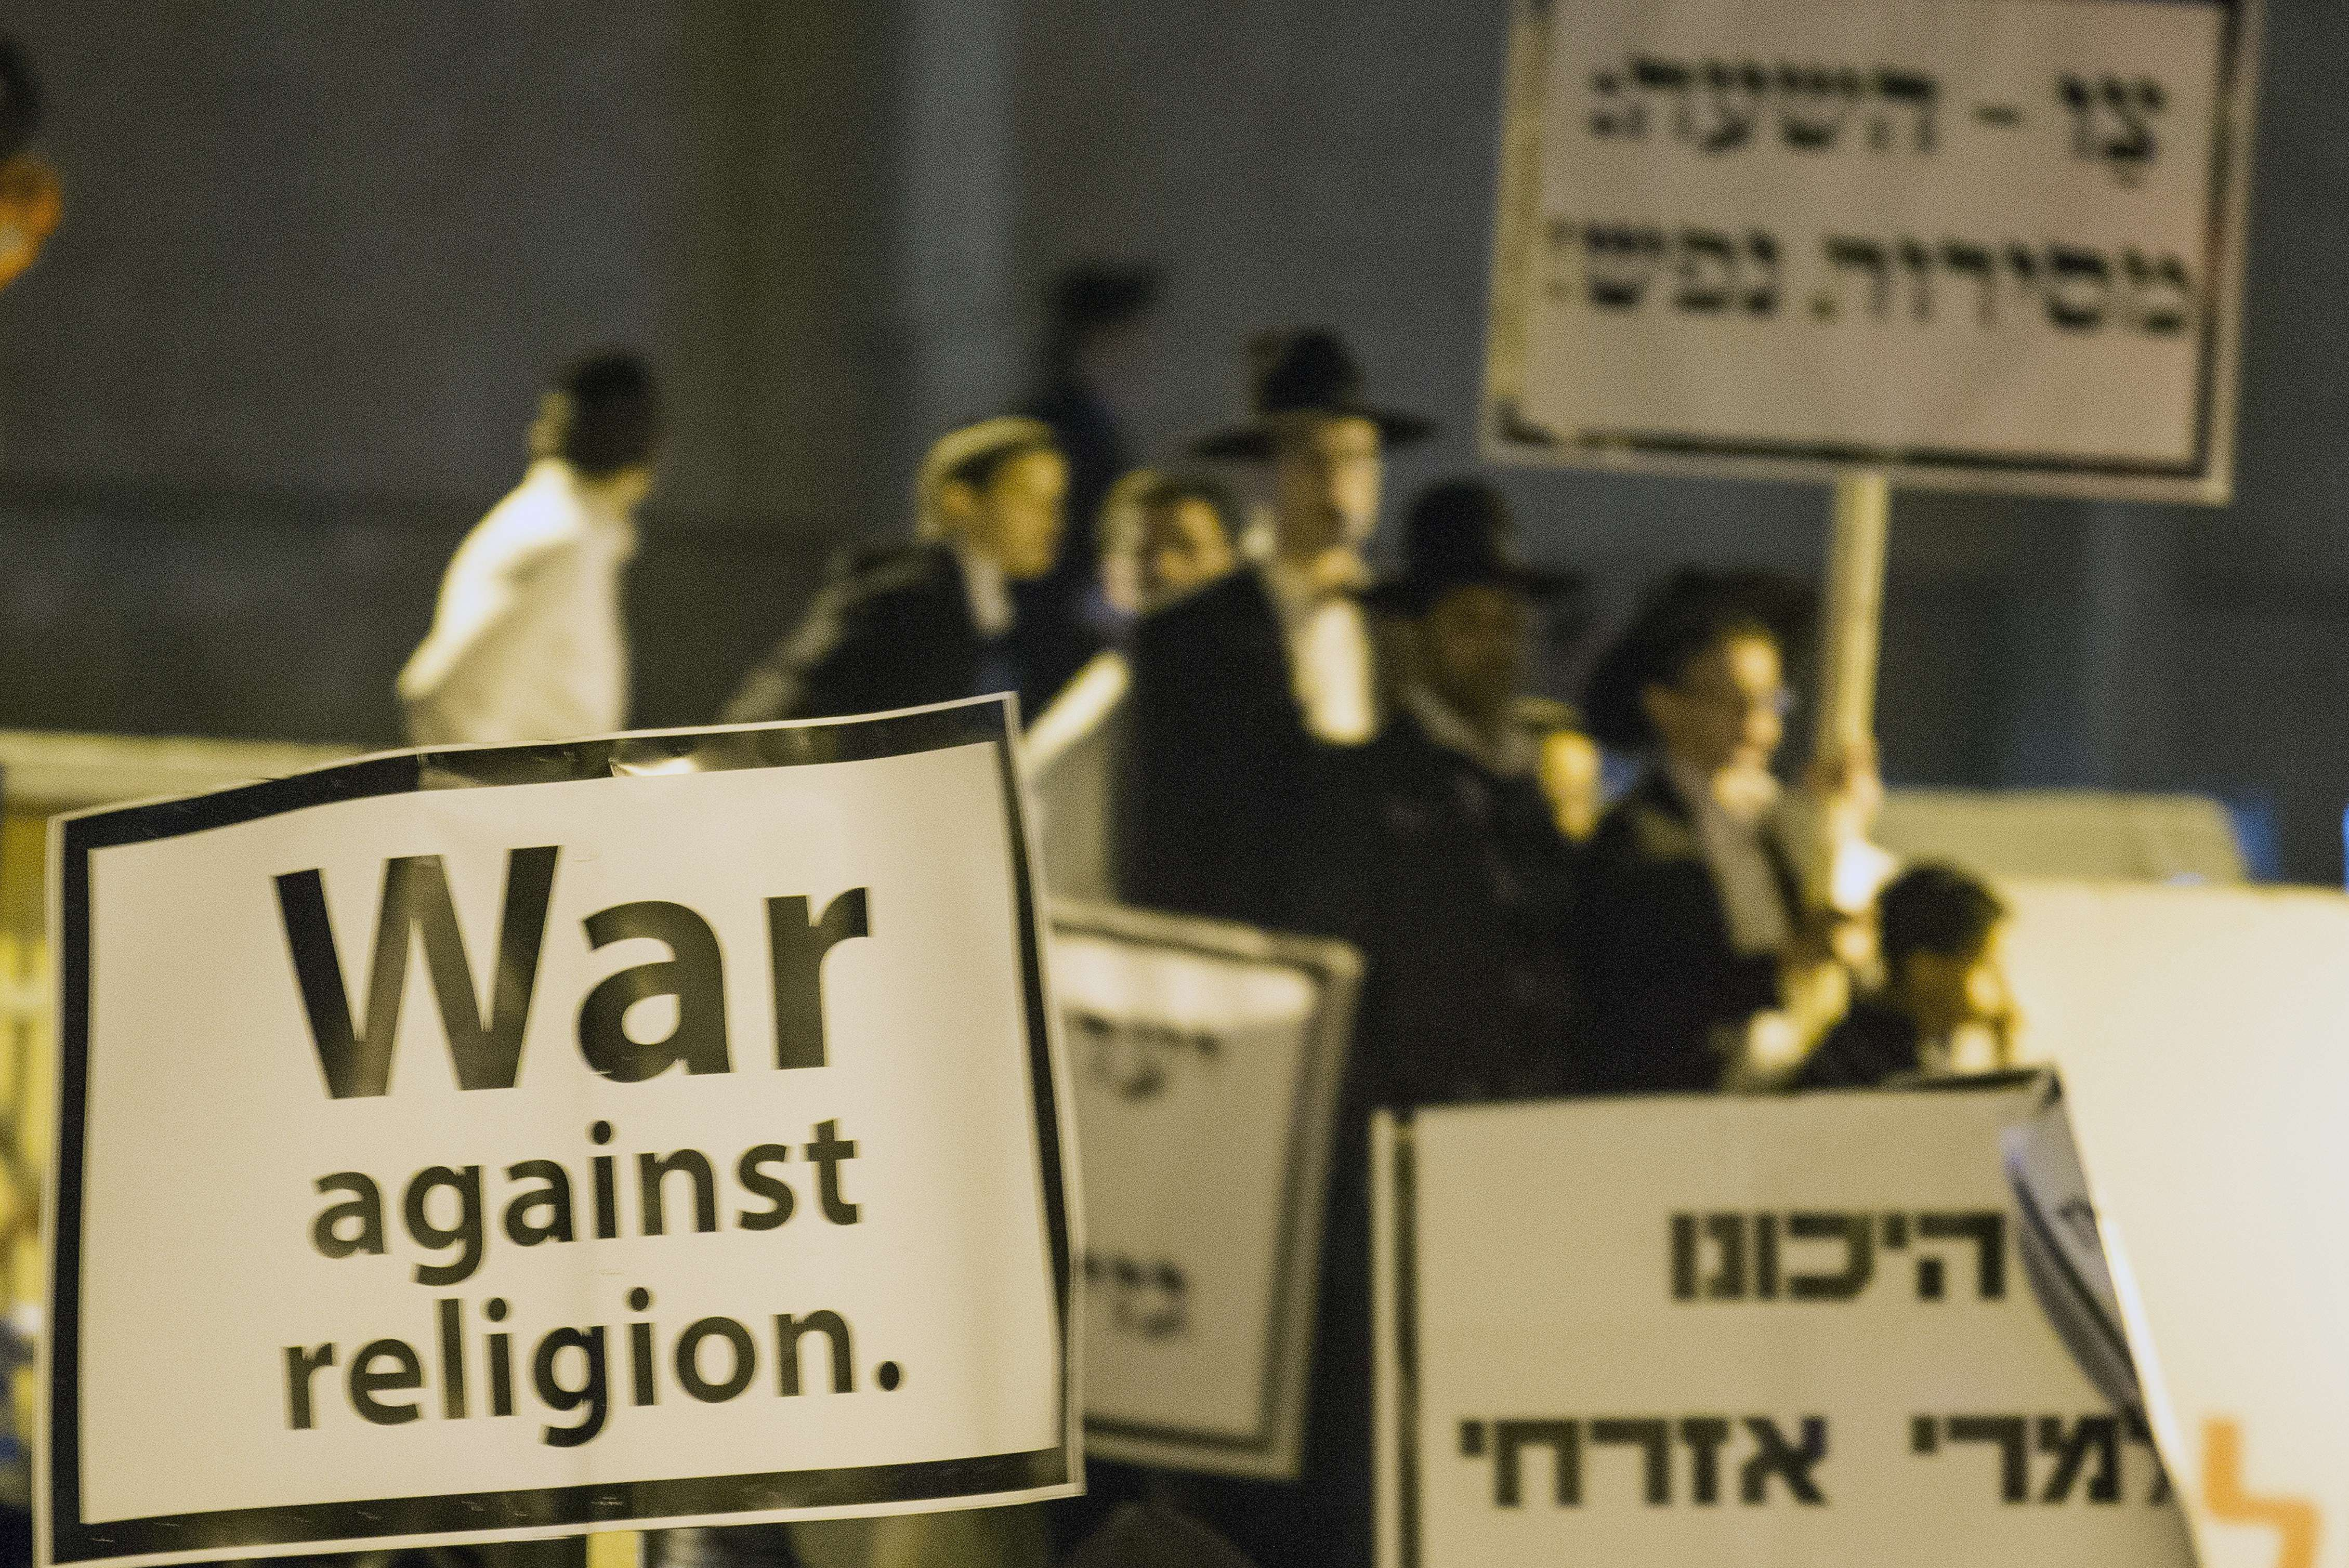 Ultra-Orthodox Jews gather in Bnei Brak to protest Haredi draft laws in Israel in March 2014.